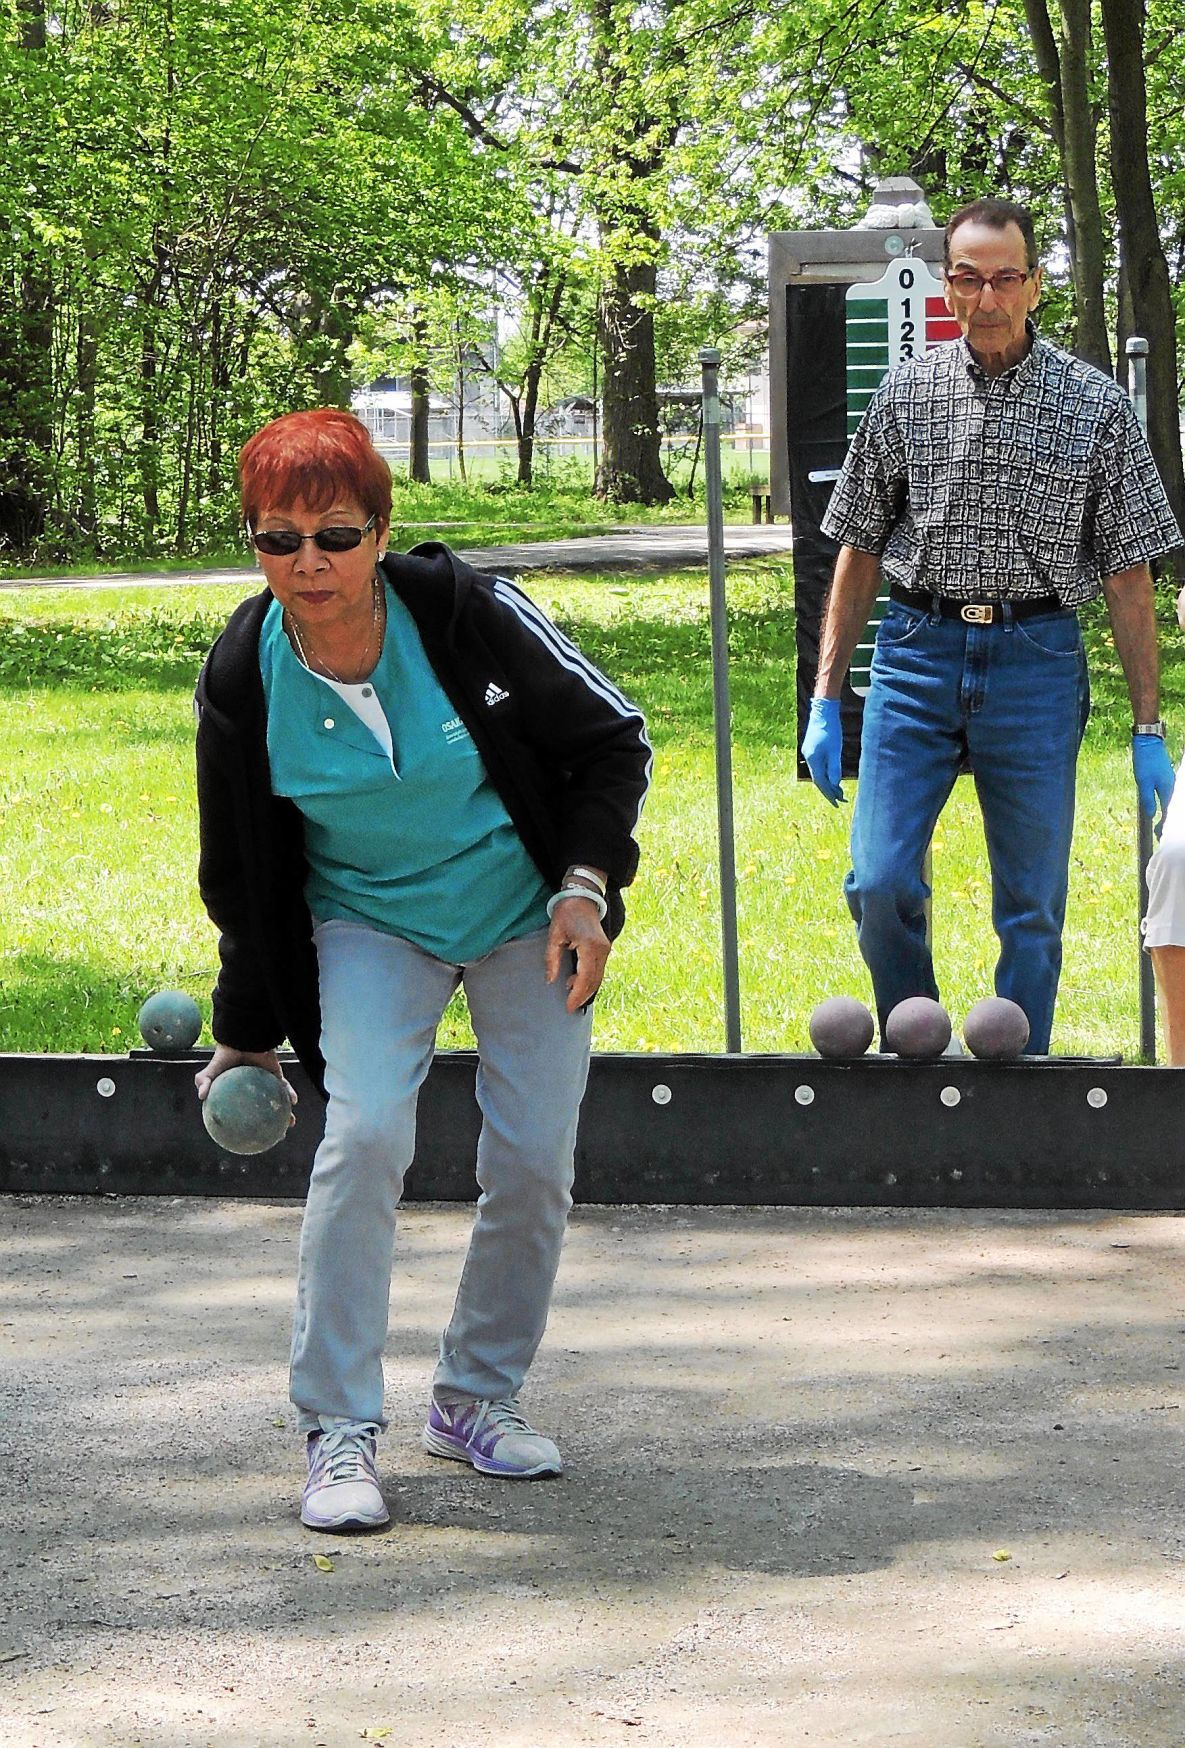 League bocce ball is serious business in Clinton Twp.